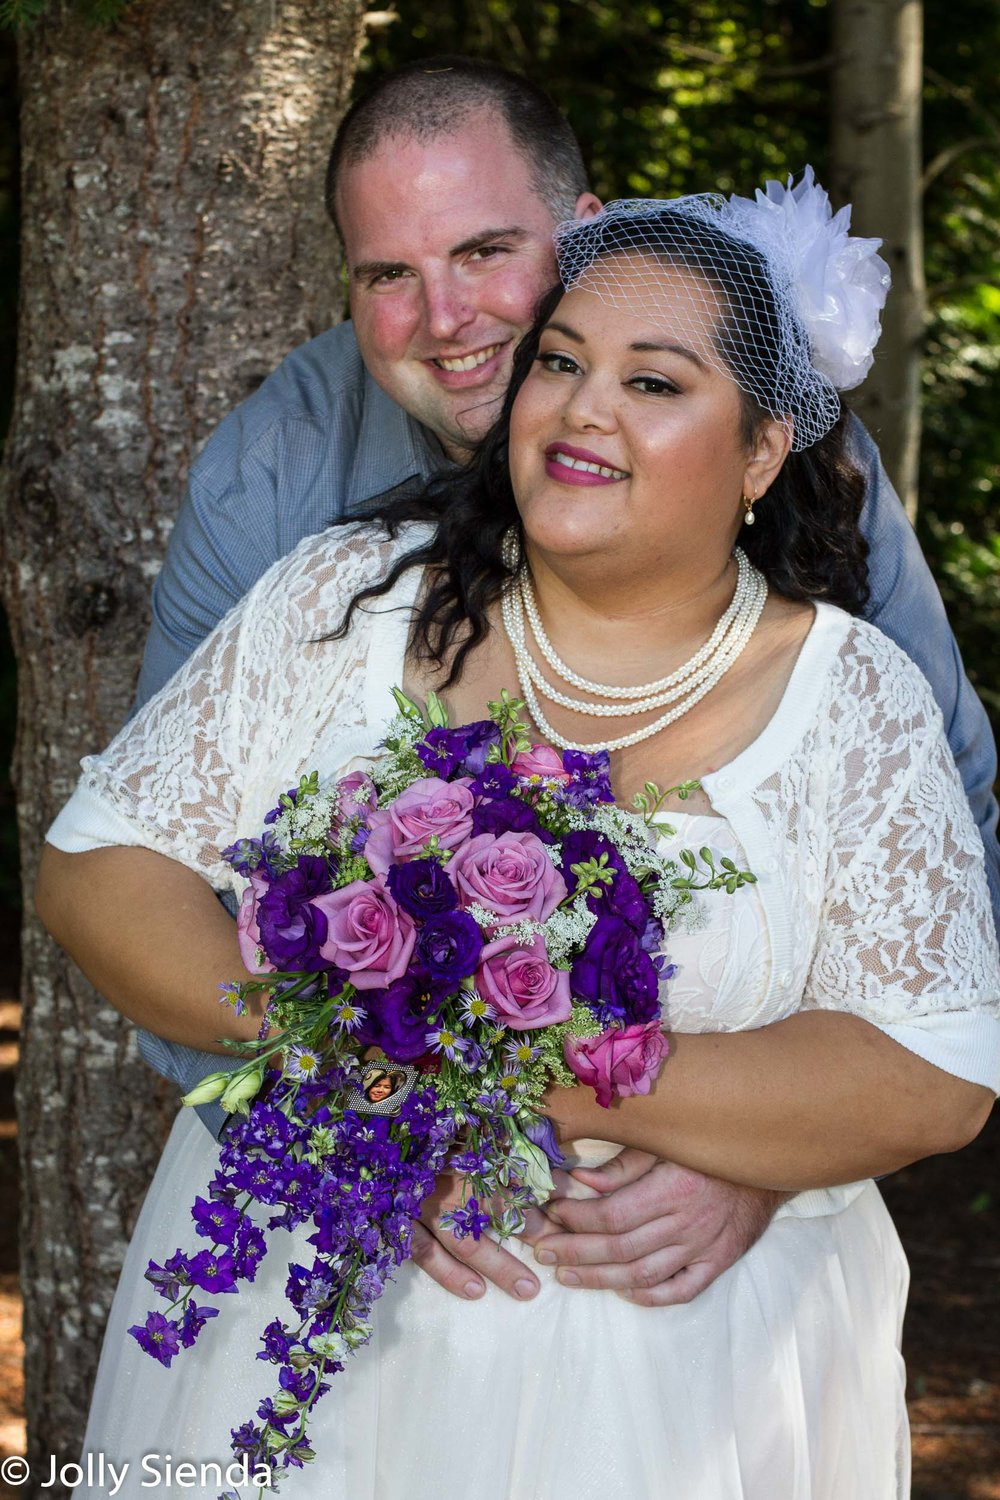 Bride and groom wedding portrait, in the forest, with bouquet